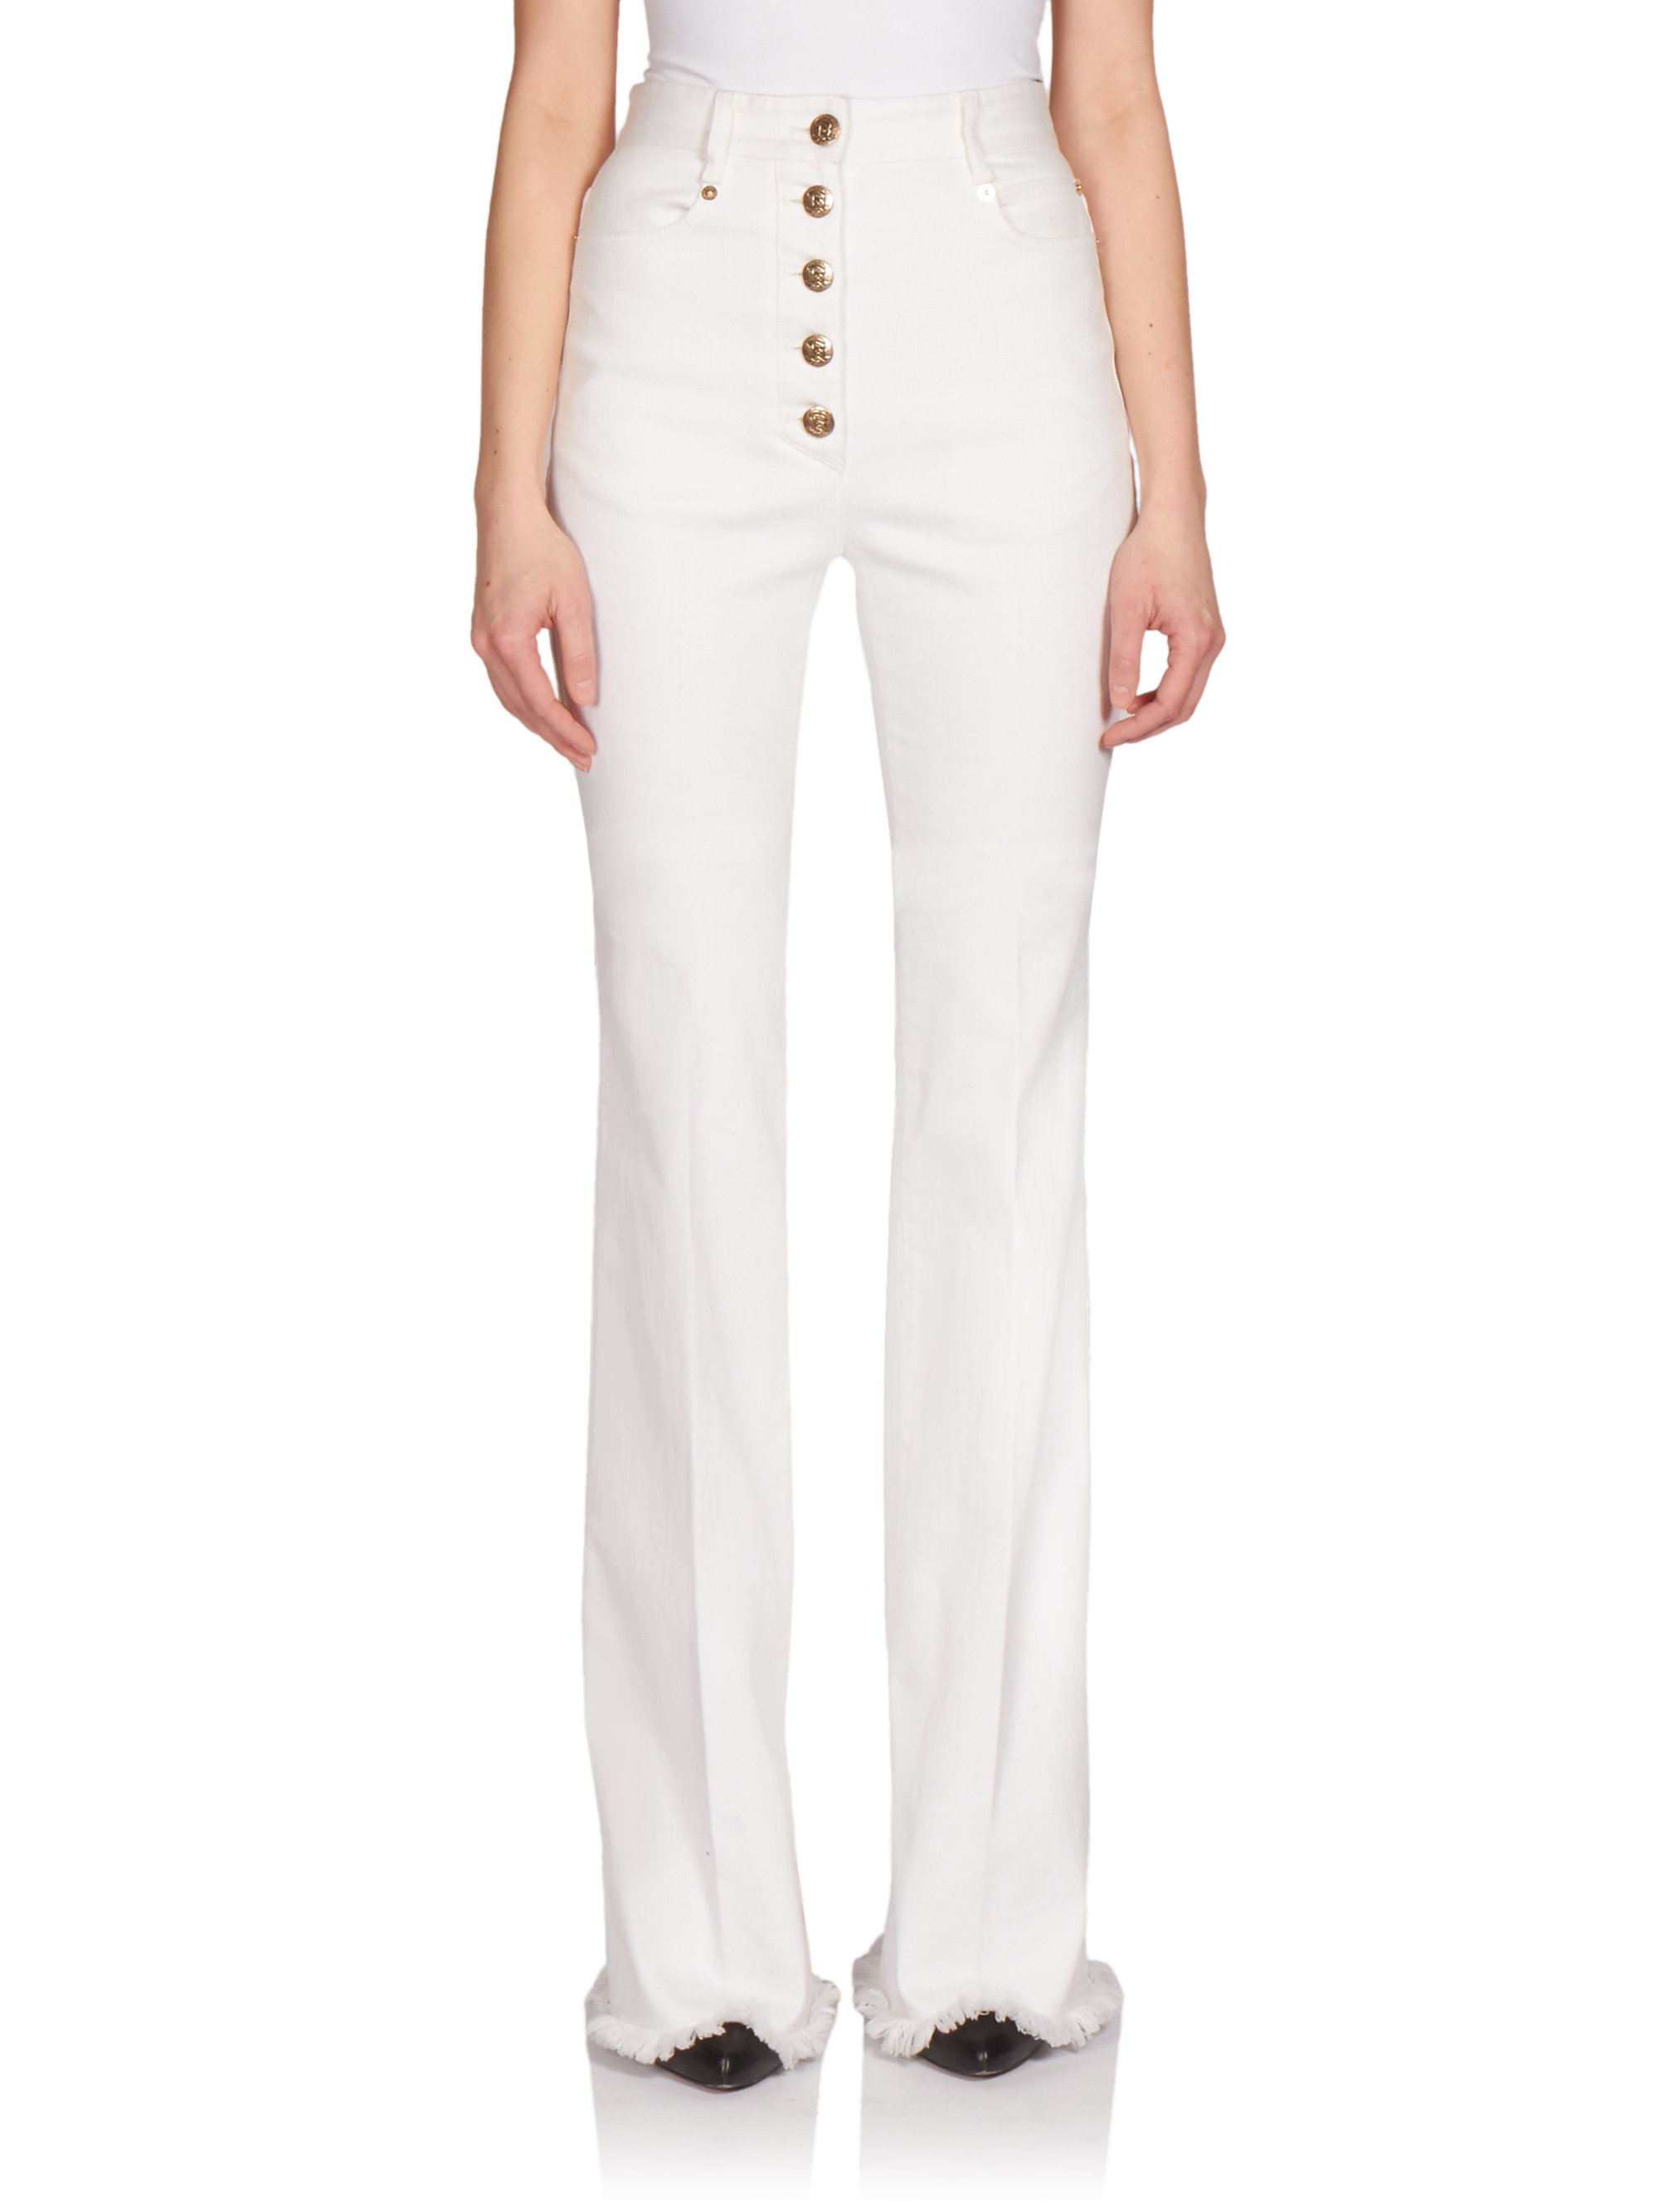 Sonia rykiel High-waist Button-front Flare Jeans in White | Lyst